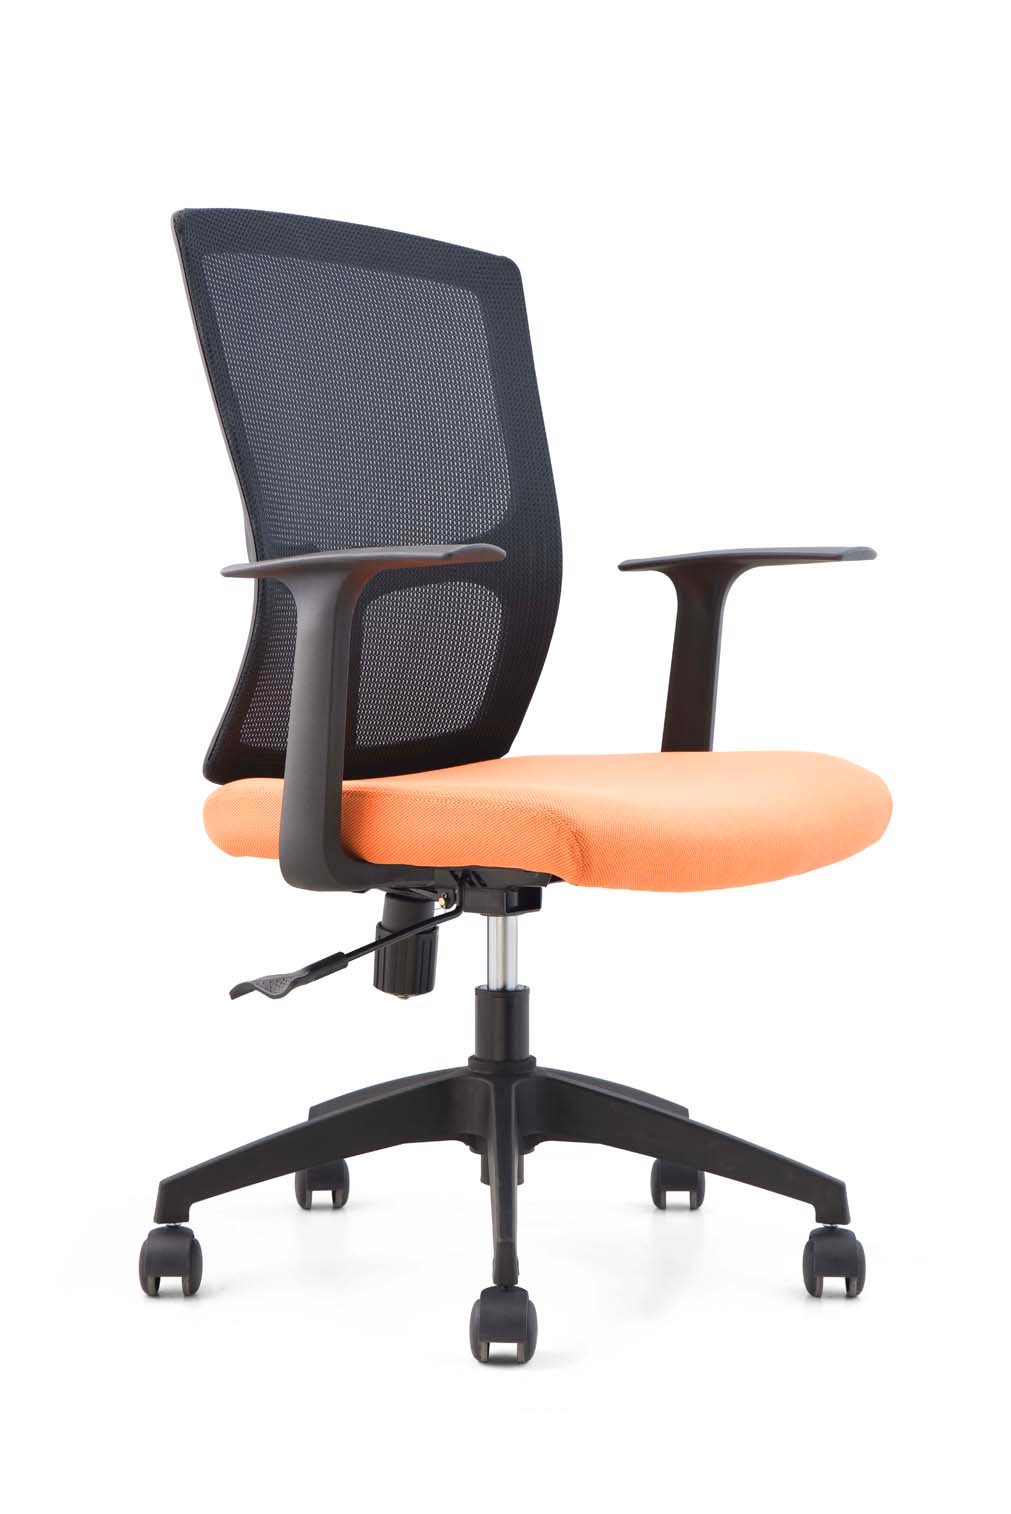 Office chair, task chair, staff chair, computer chair, meeting chair, ergonomic chair, 辦公室椅, 工作椅,職員椅, 電腦椅, 會議椅 人體工學椅